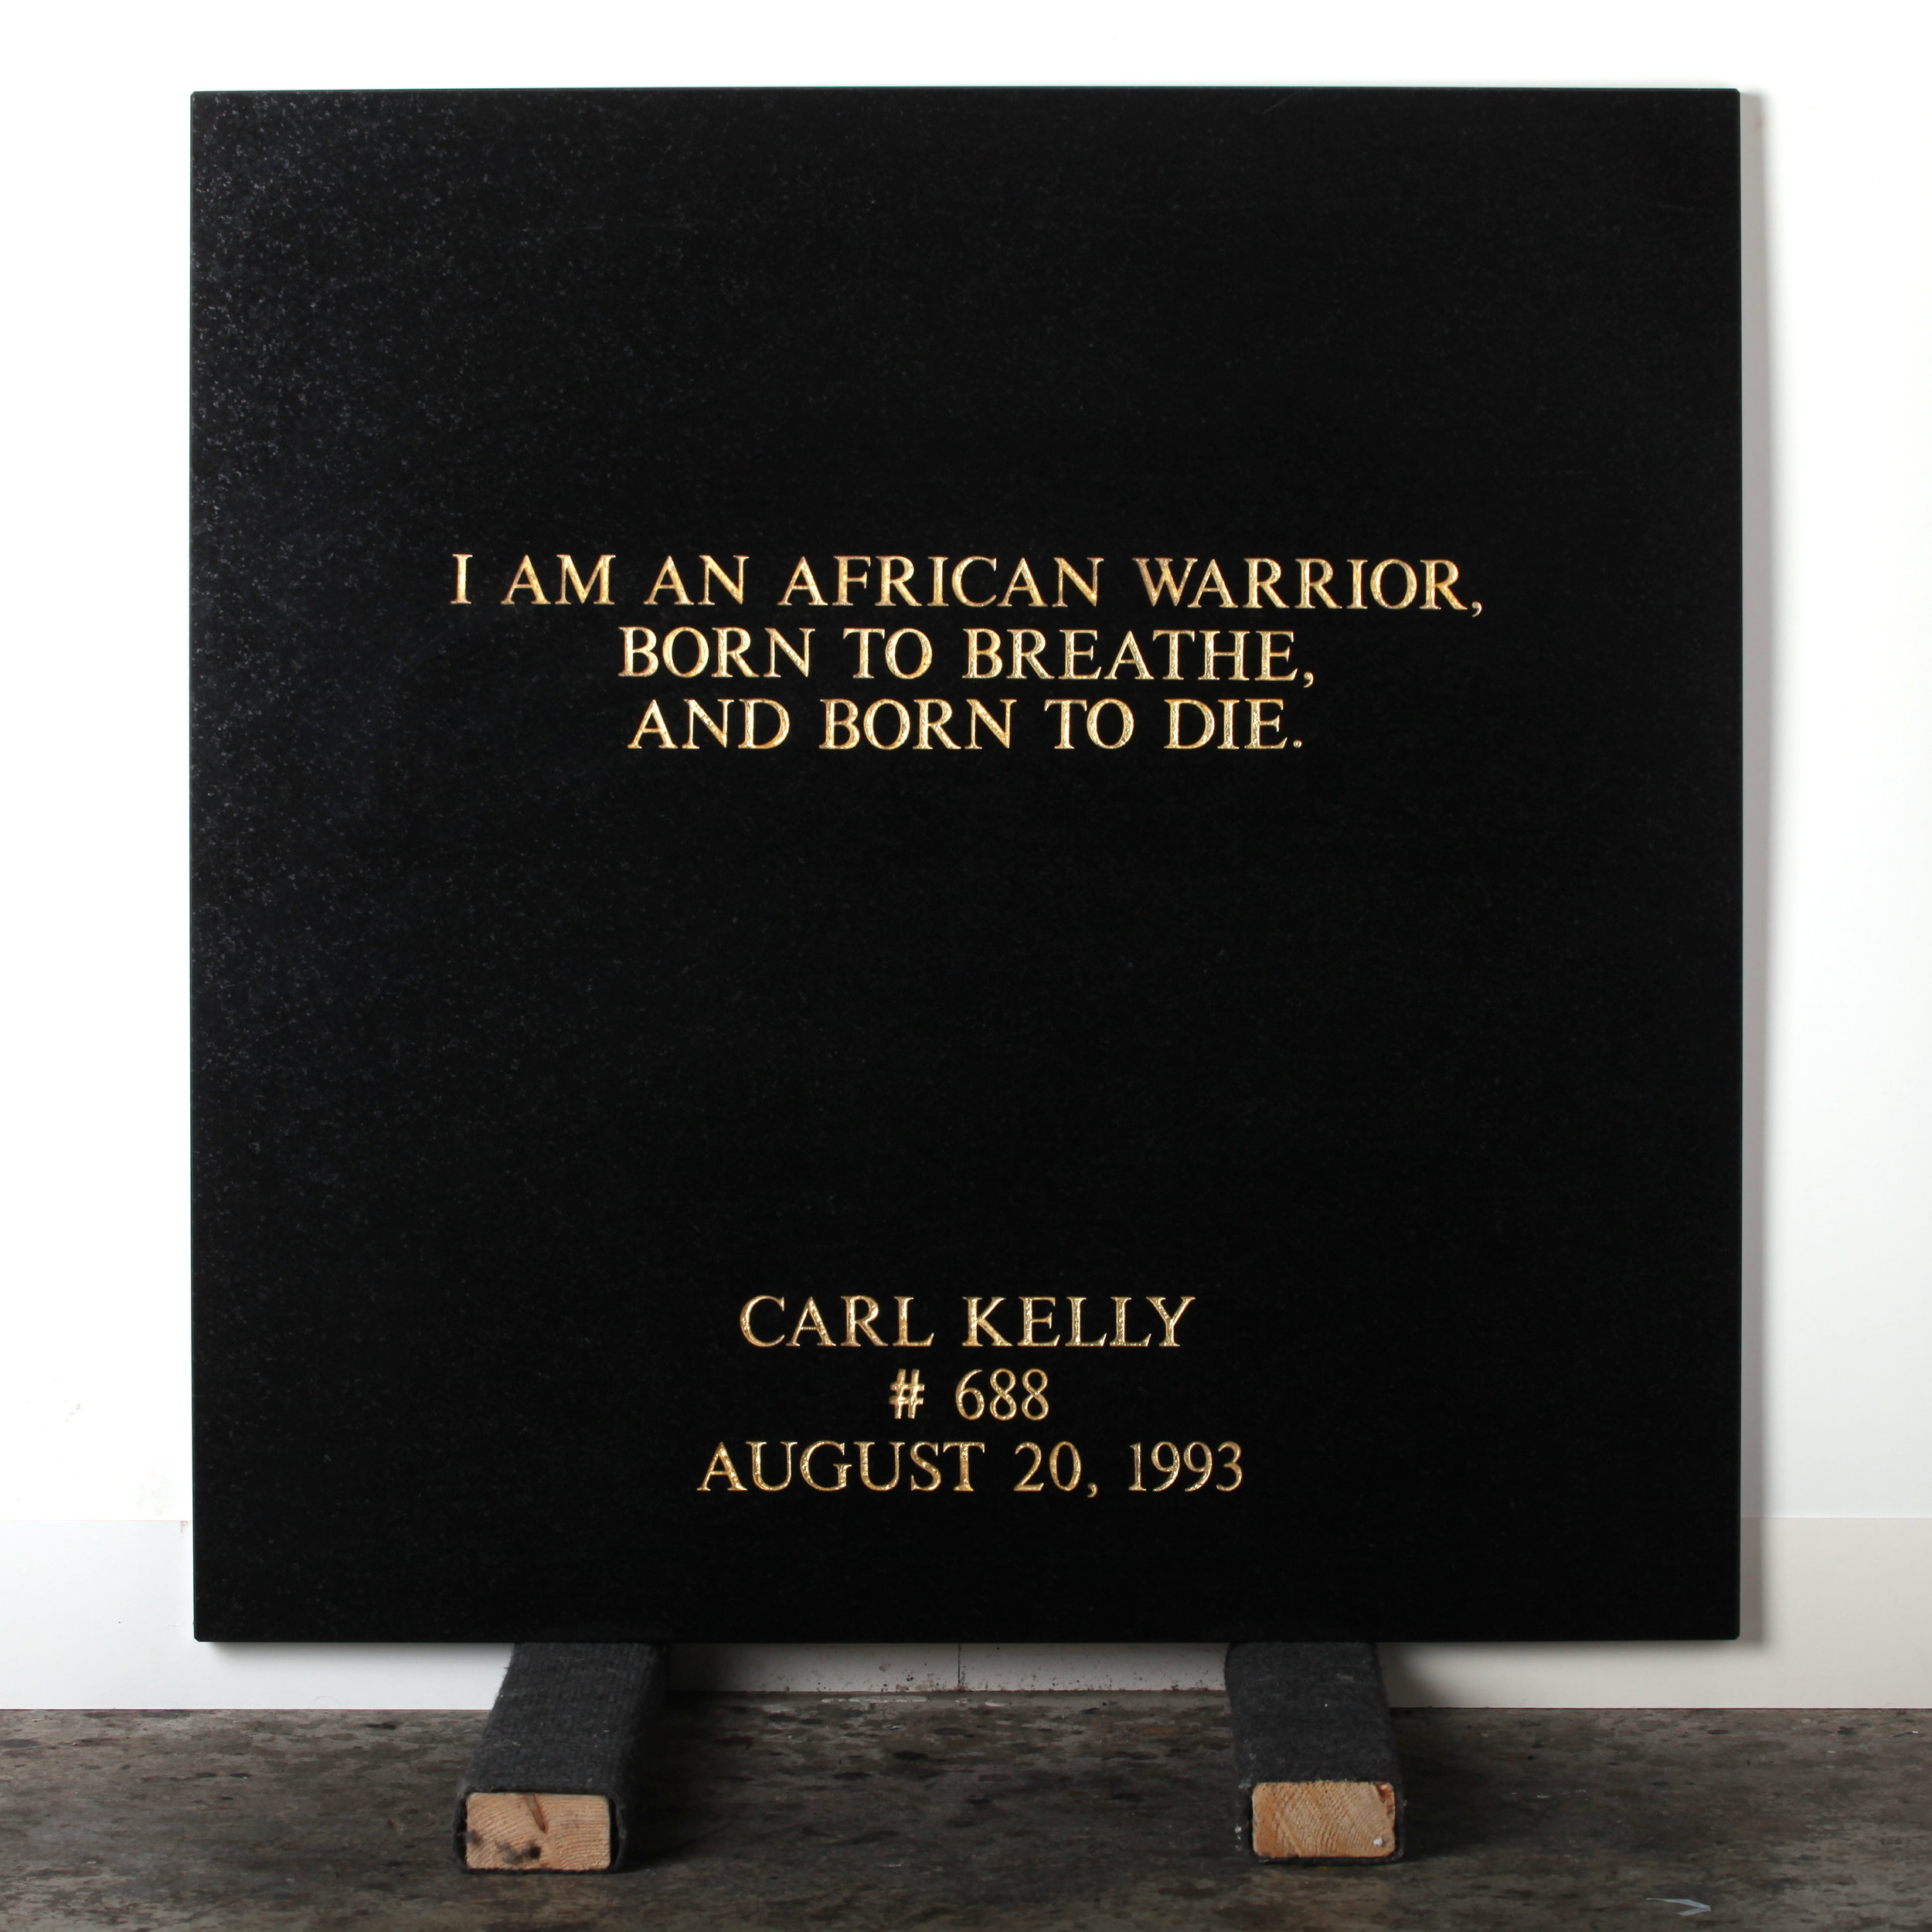 Last Statement /  Plate VII.. # 688 Carl Kelly  Marble / Sandblasted Letters / 24 Carat Gold Leaf 80 x 80 x 3 cm / 31 x 31 x 1,5 in Collection of Per Fronth